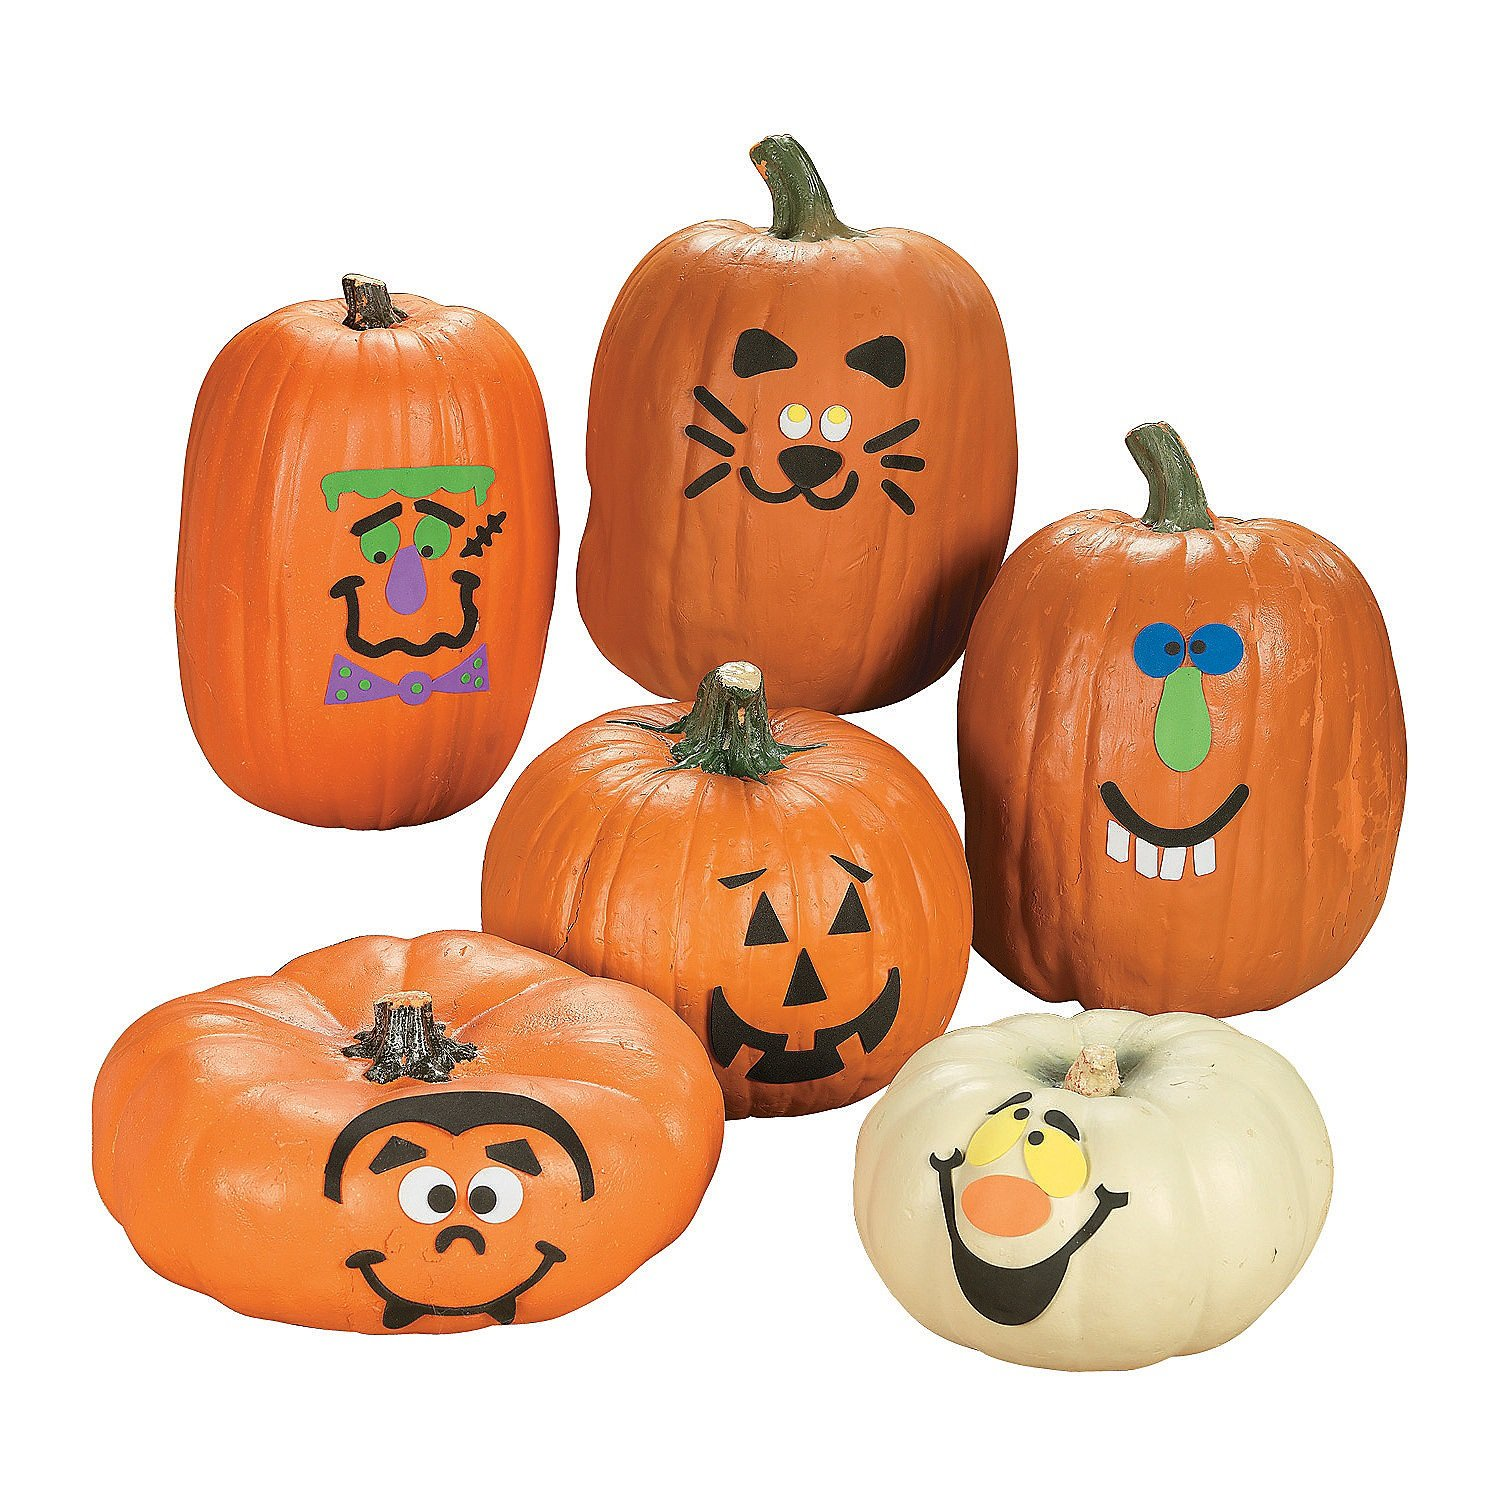 Funny face pumpkin kit to decorate with for kids Halloween craft activity